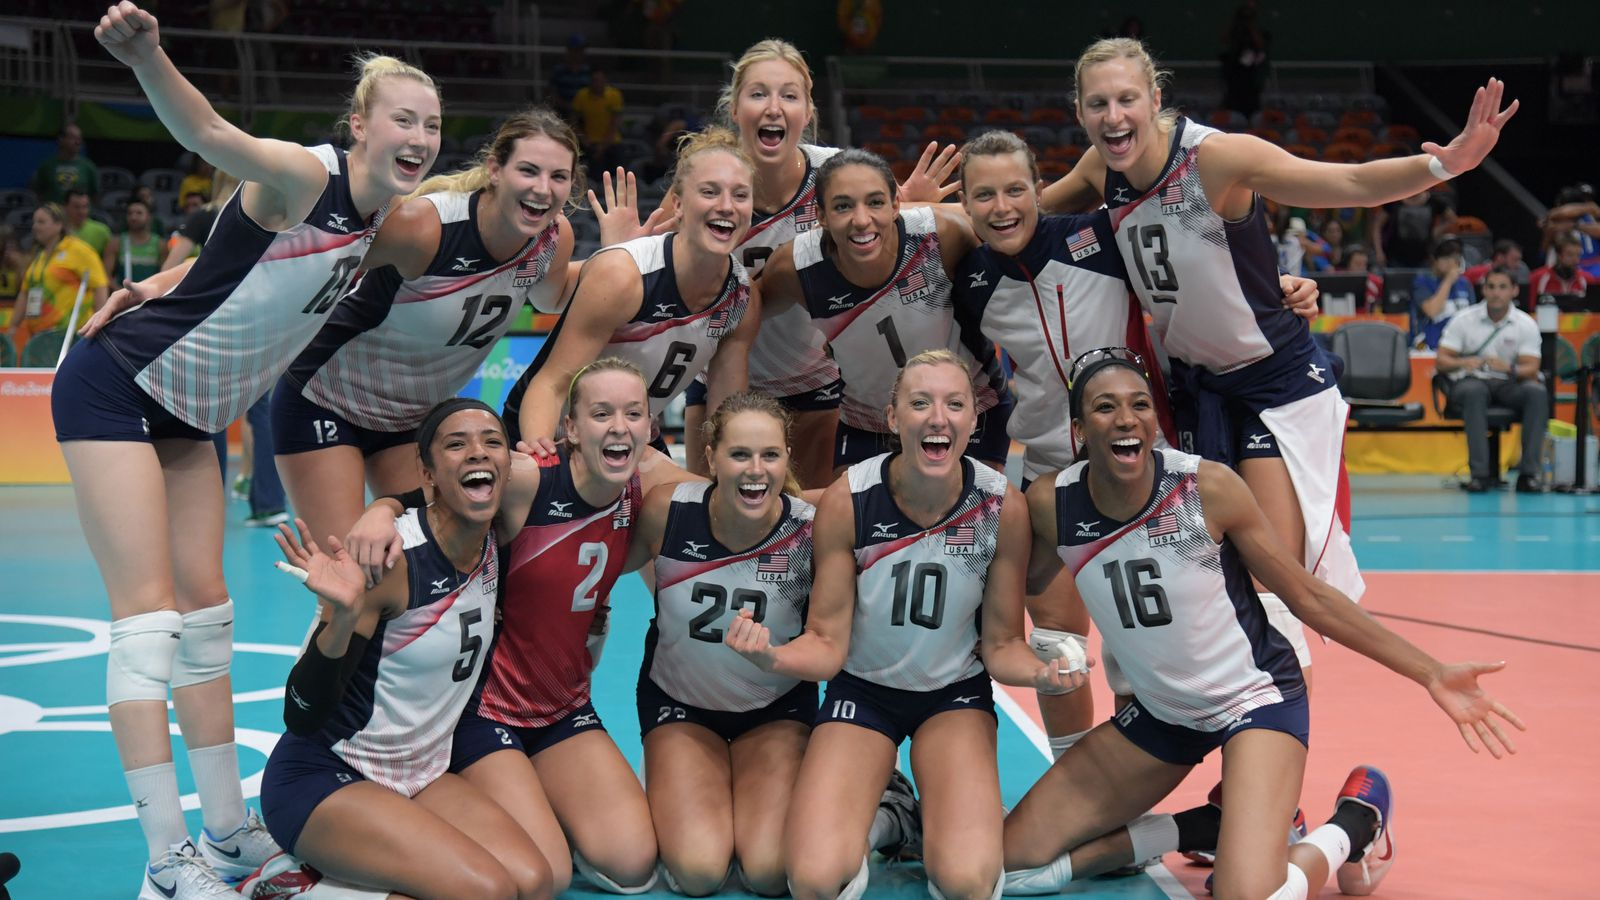 Olympic Volleyball Results 2016 United States Picks Up